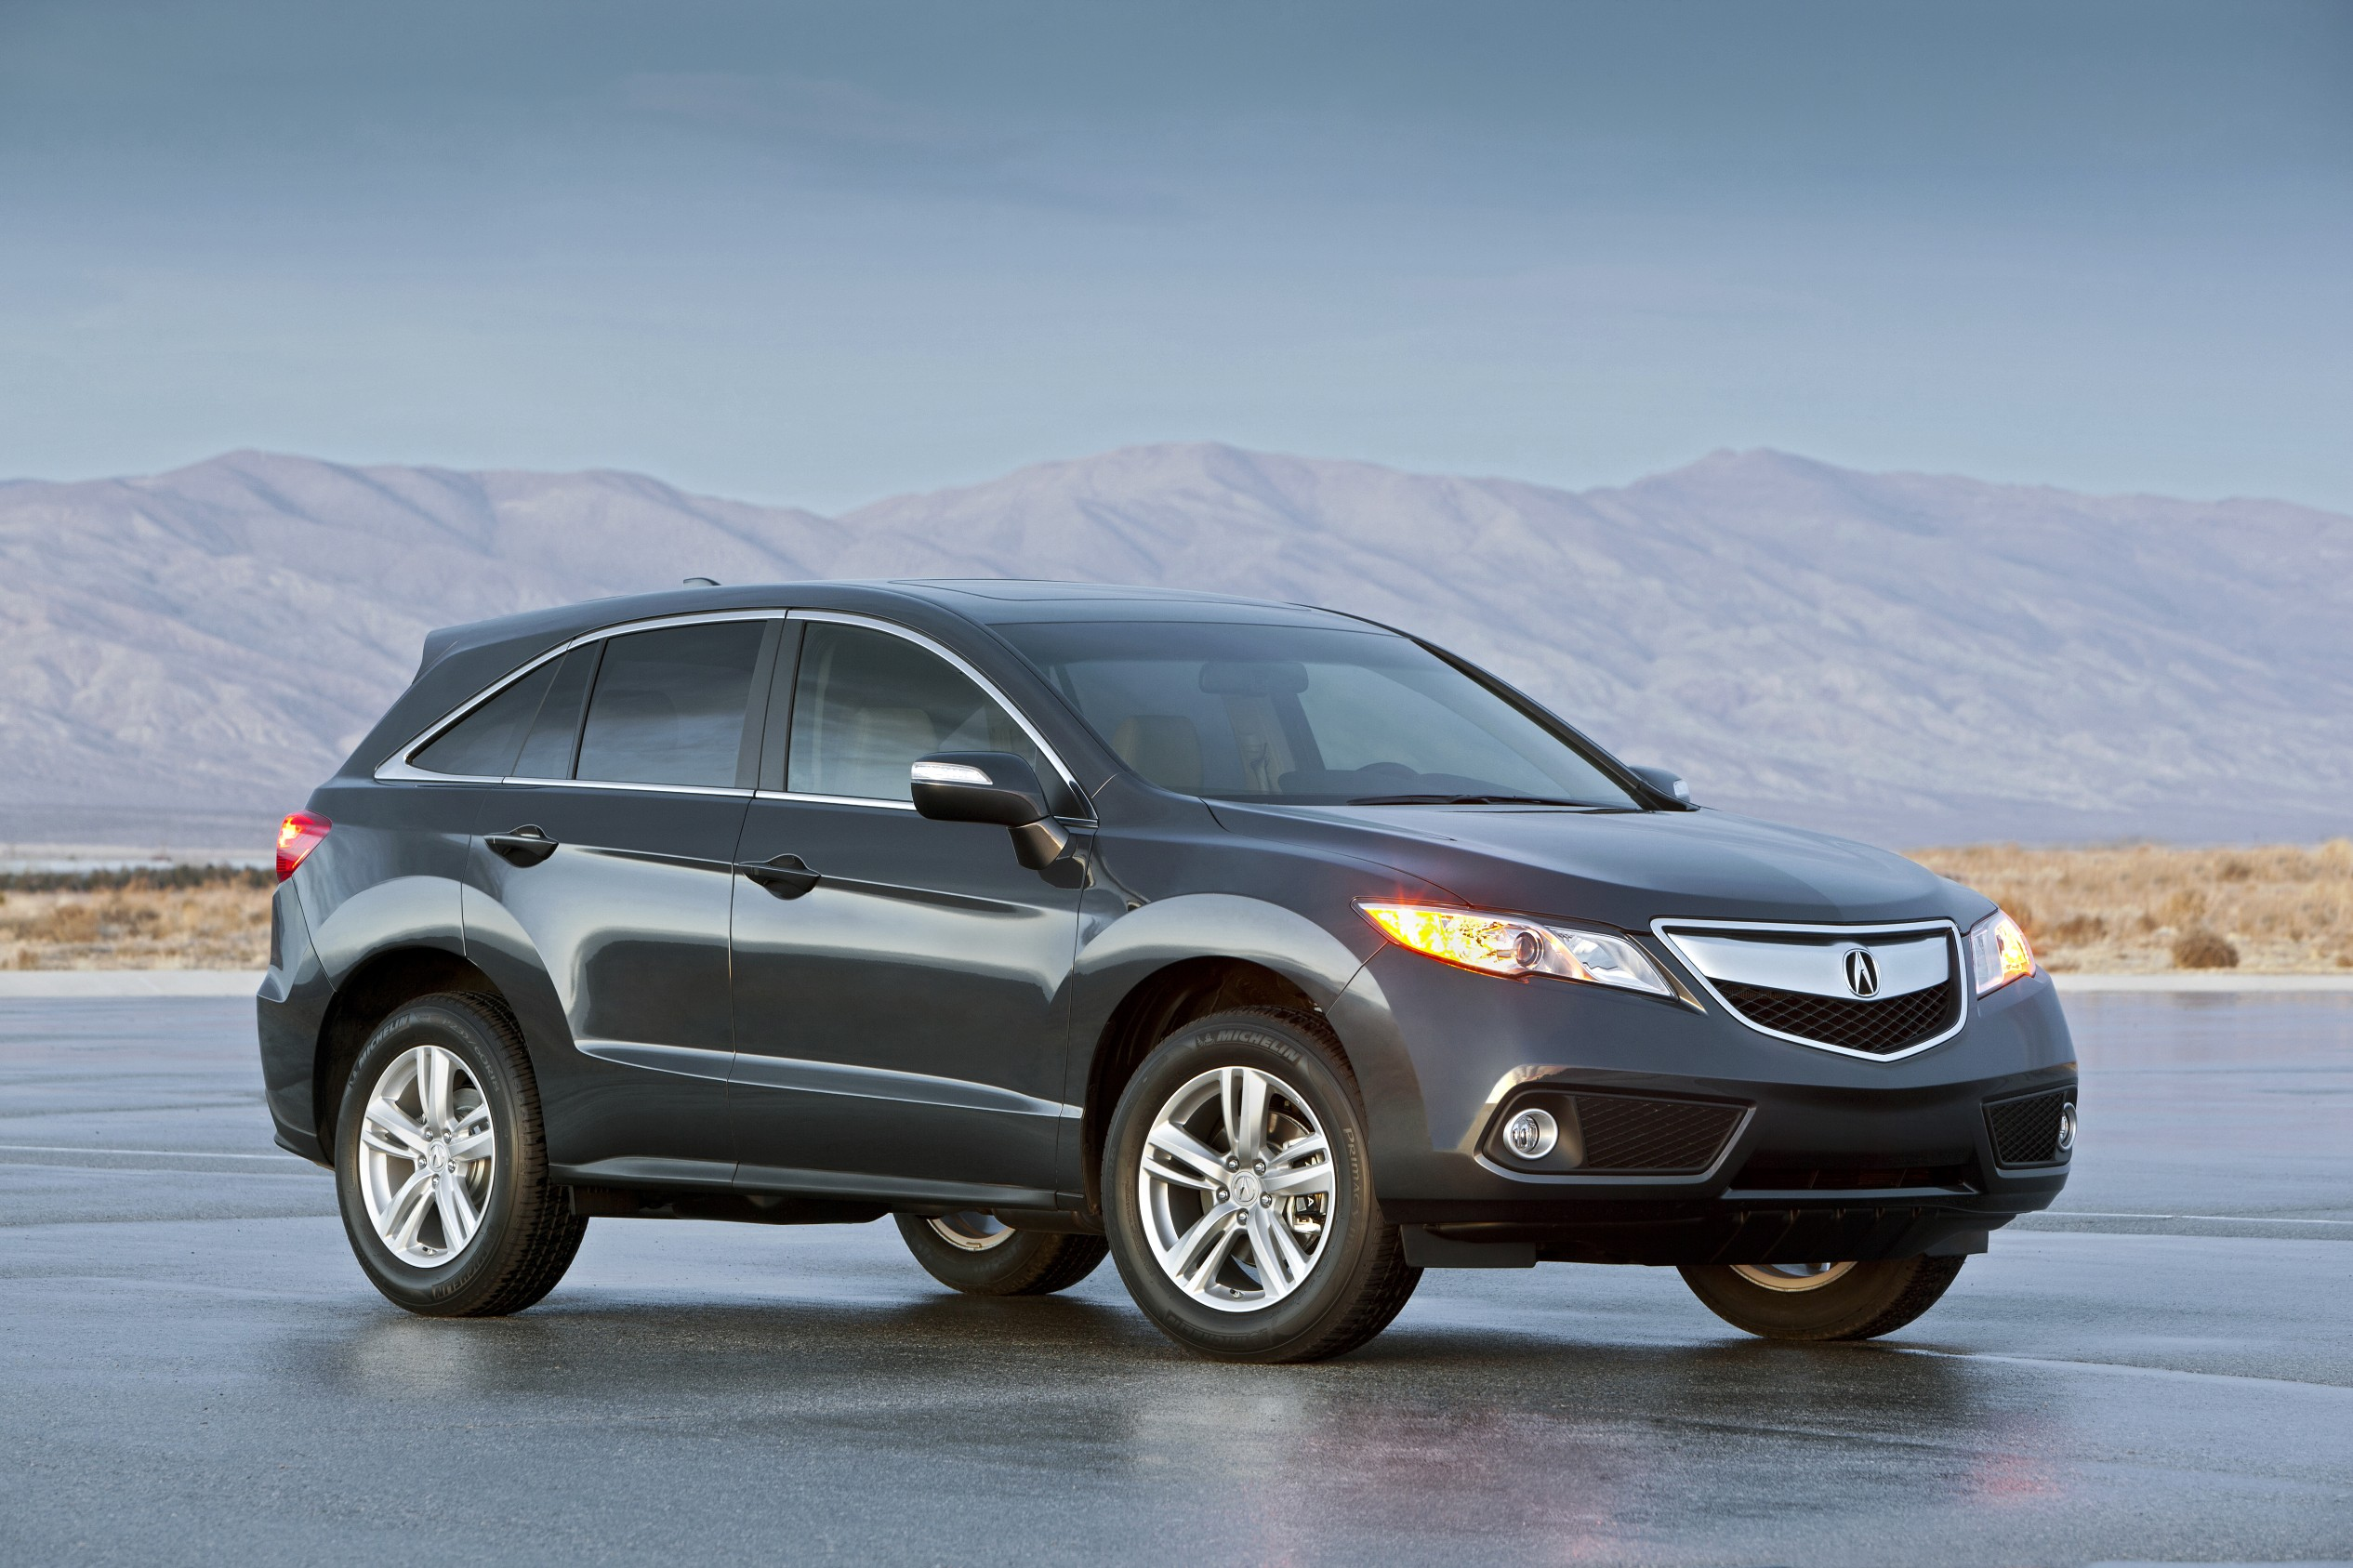 2013 acura rdx review ratings specs prices and photos the car connection. Black Bedroom Furniture Sets. Home Design Ideas